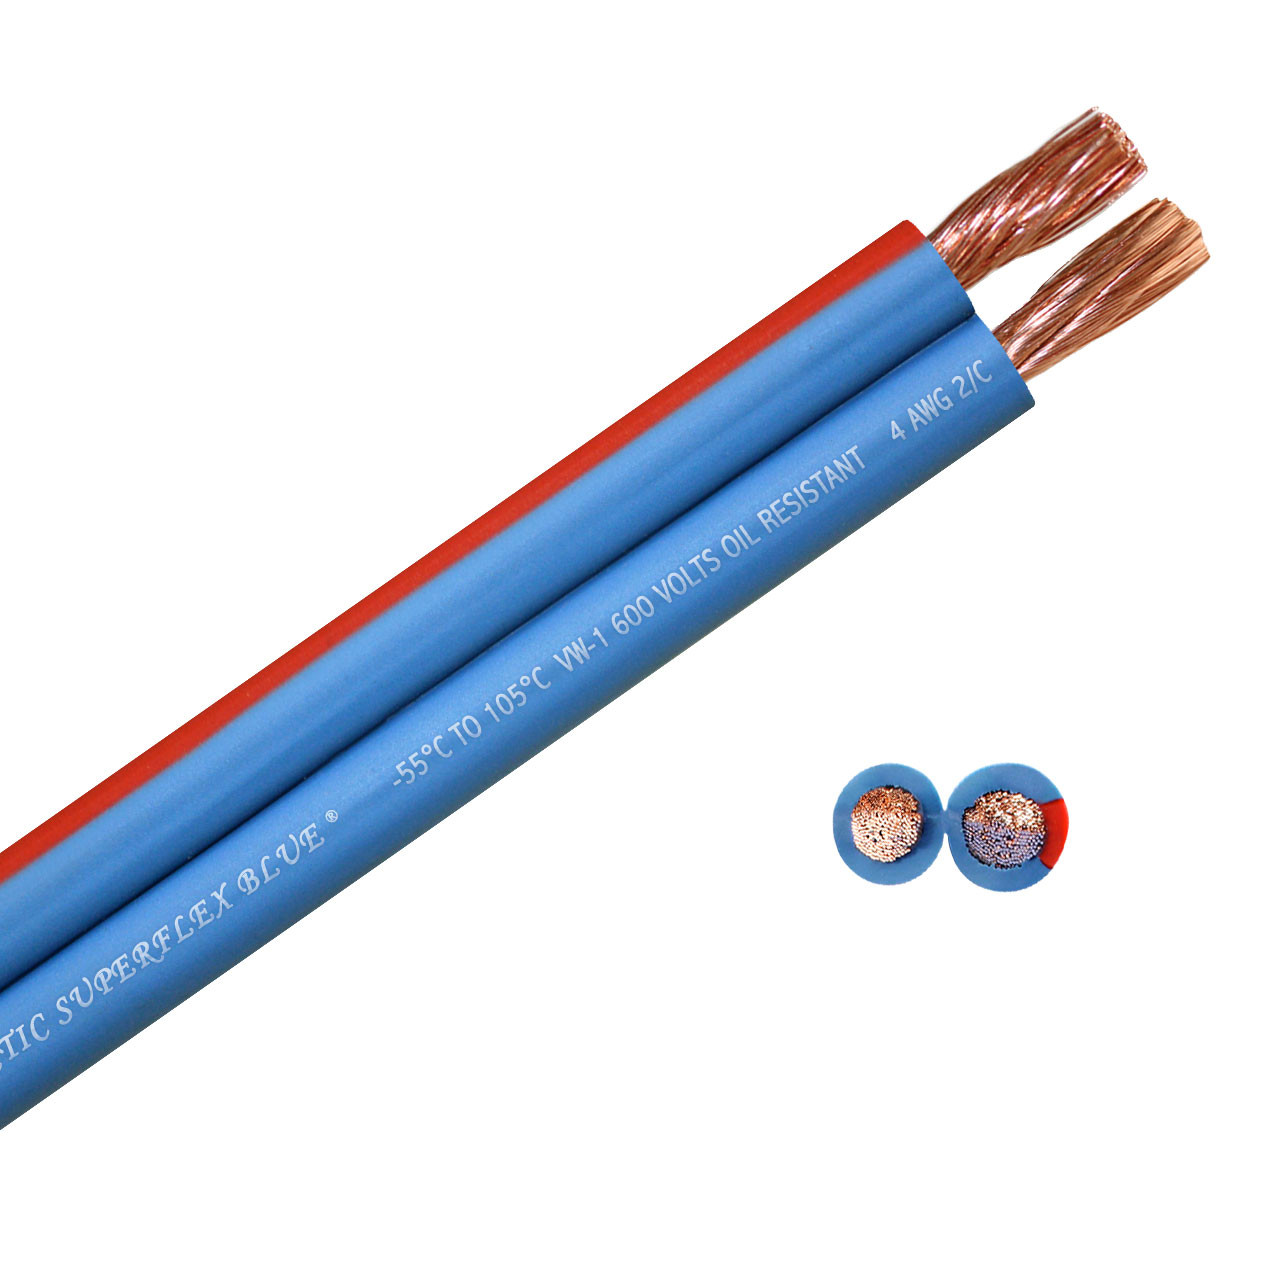 Arctic Superflex Blue 4 AWG 100% copper twin wire is made in the USA